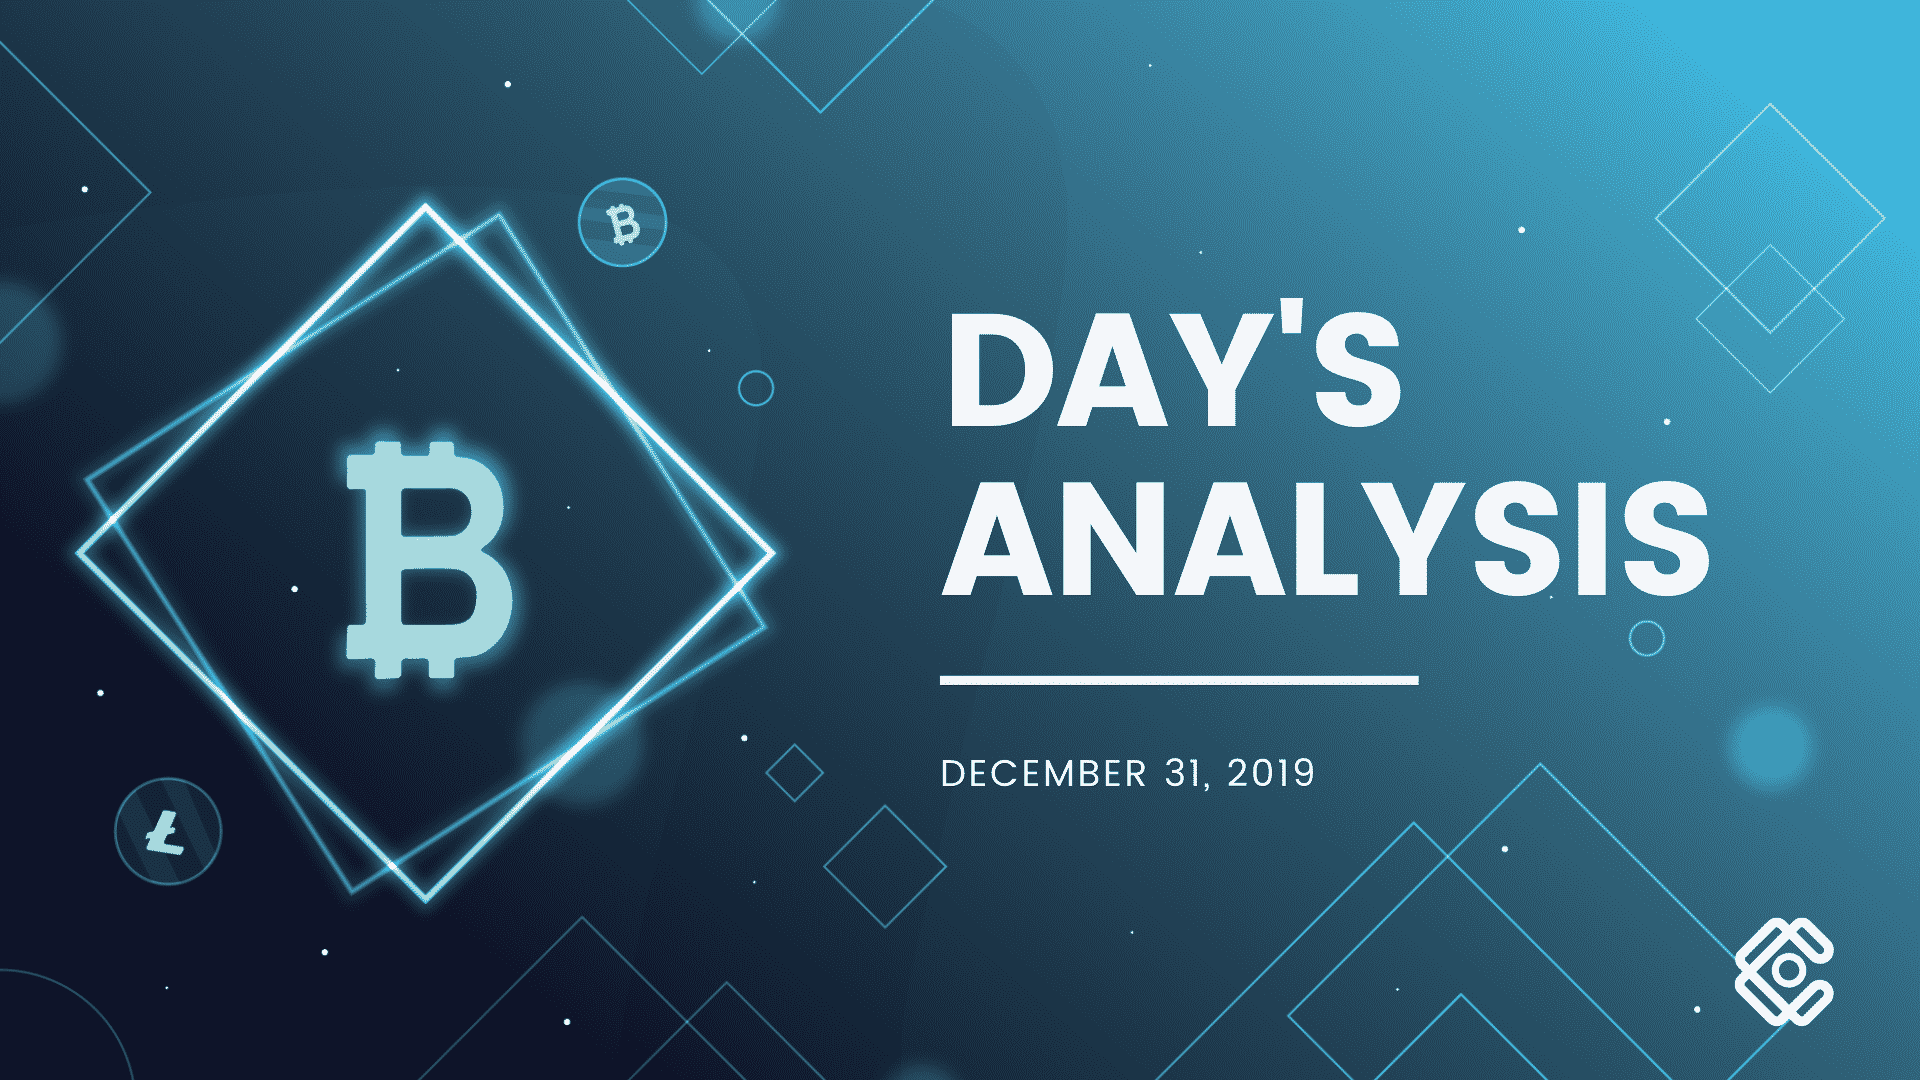 Market Analysis of December 31, 2019